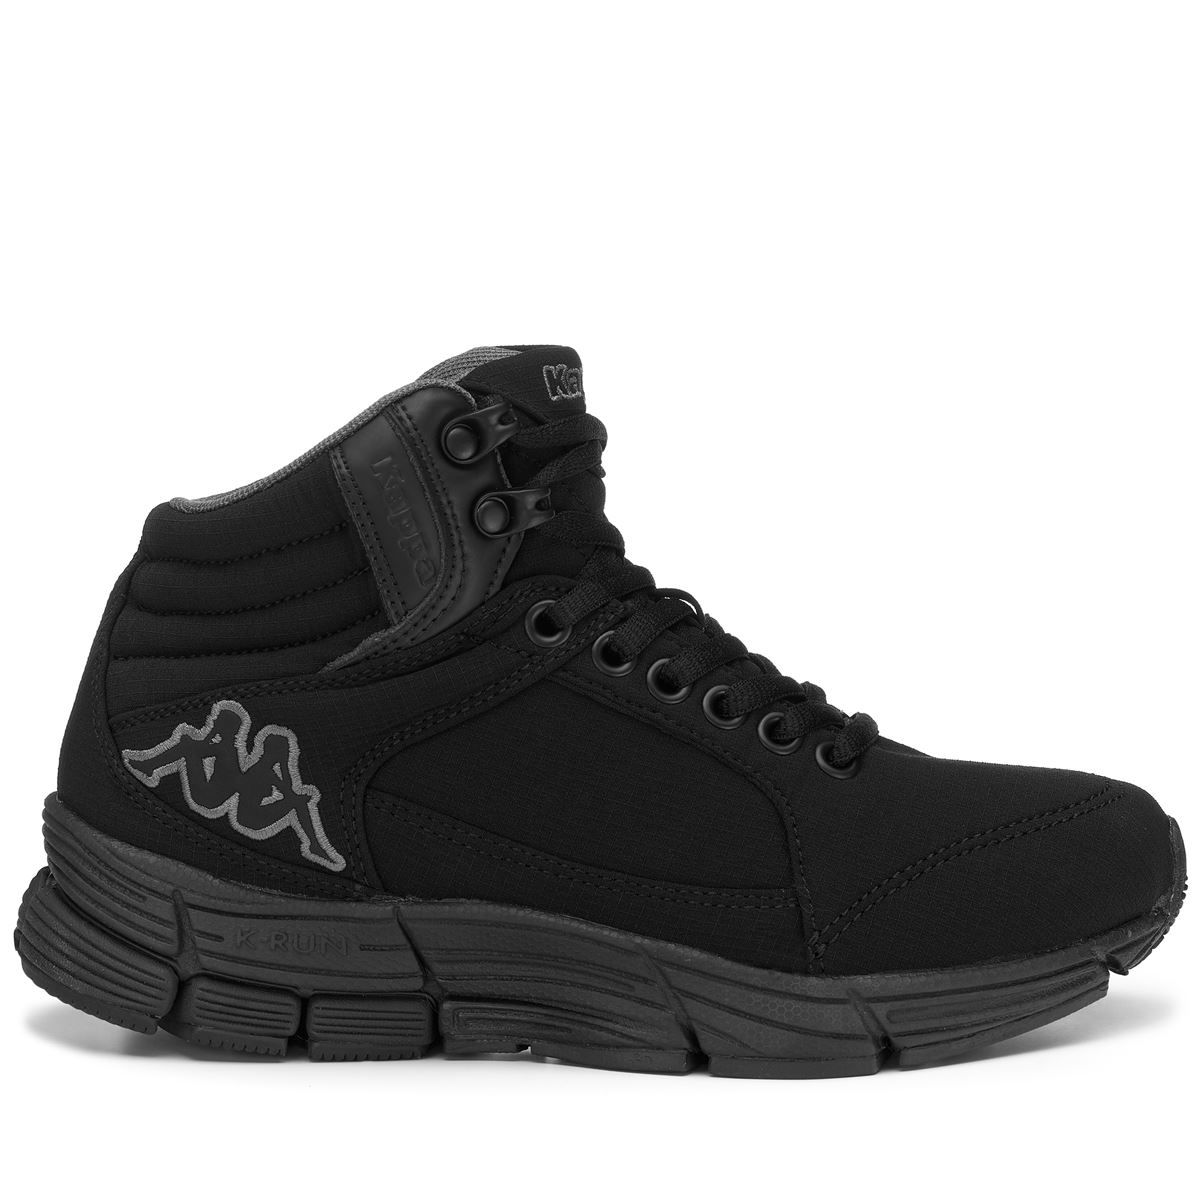 Kappa ANKLE BOOTS RUNWALK1 0006 COLD BUSTER Man Woman LACED